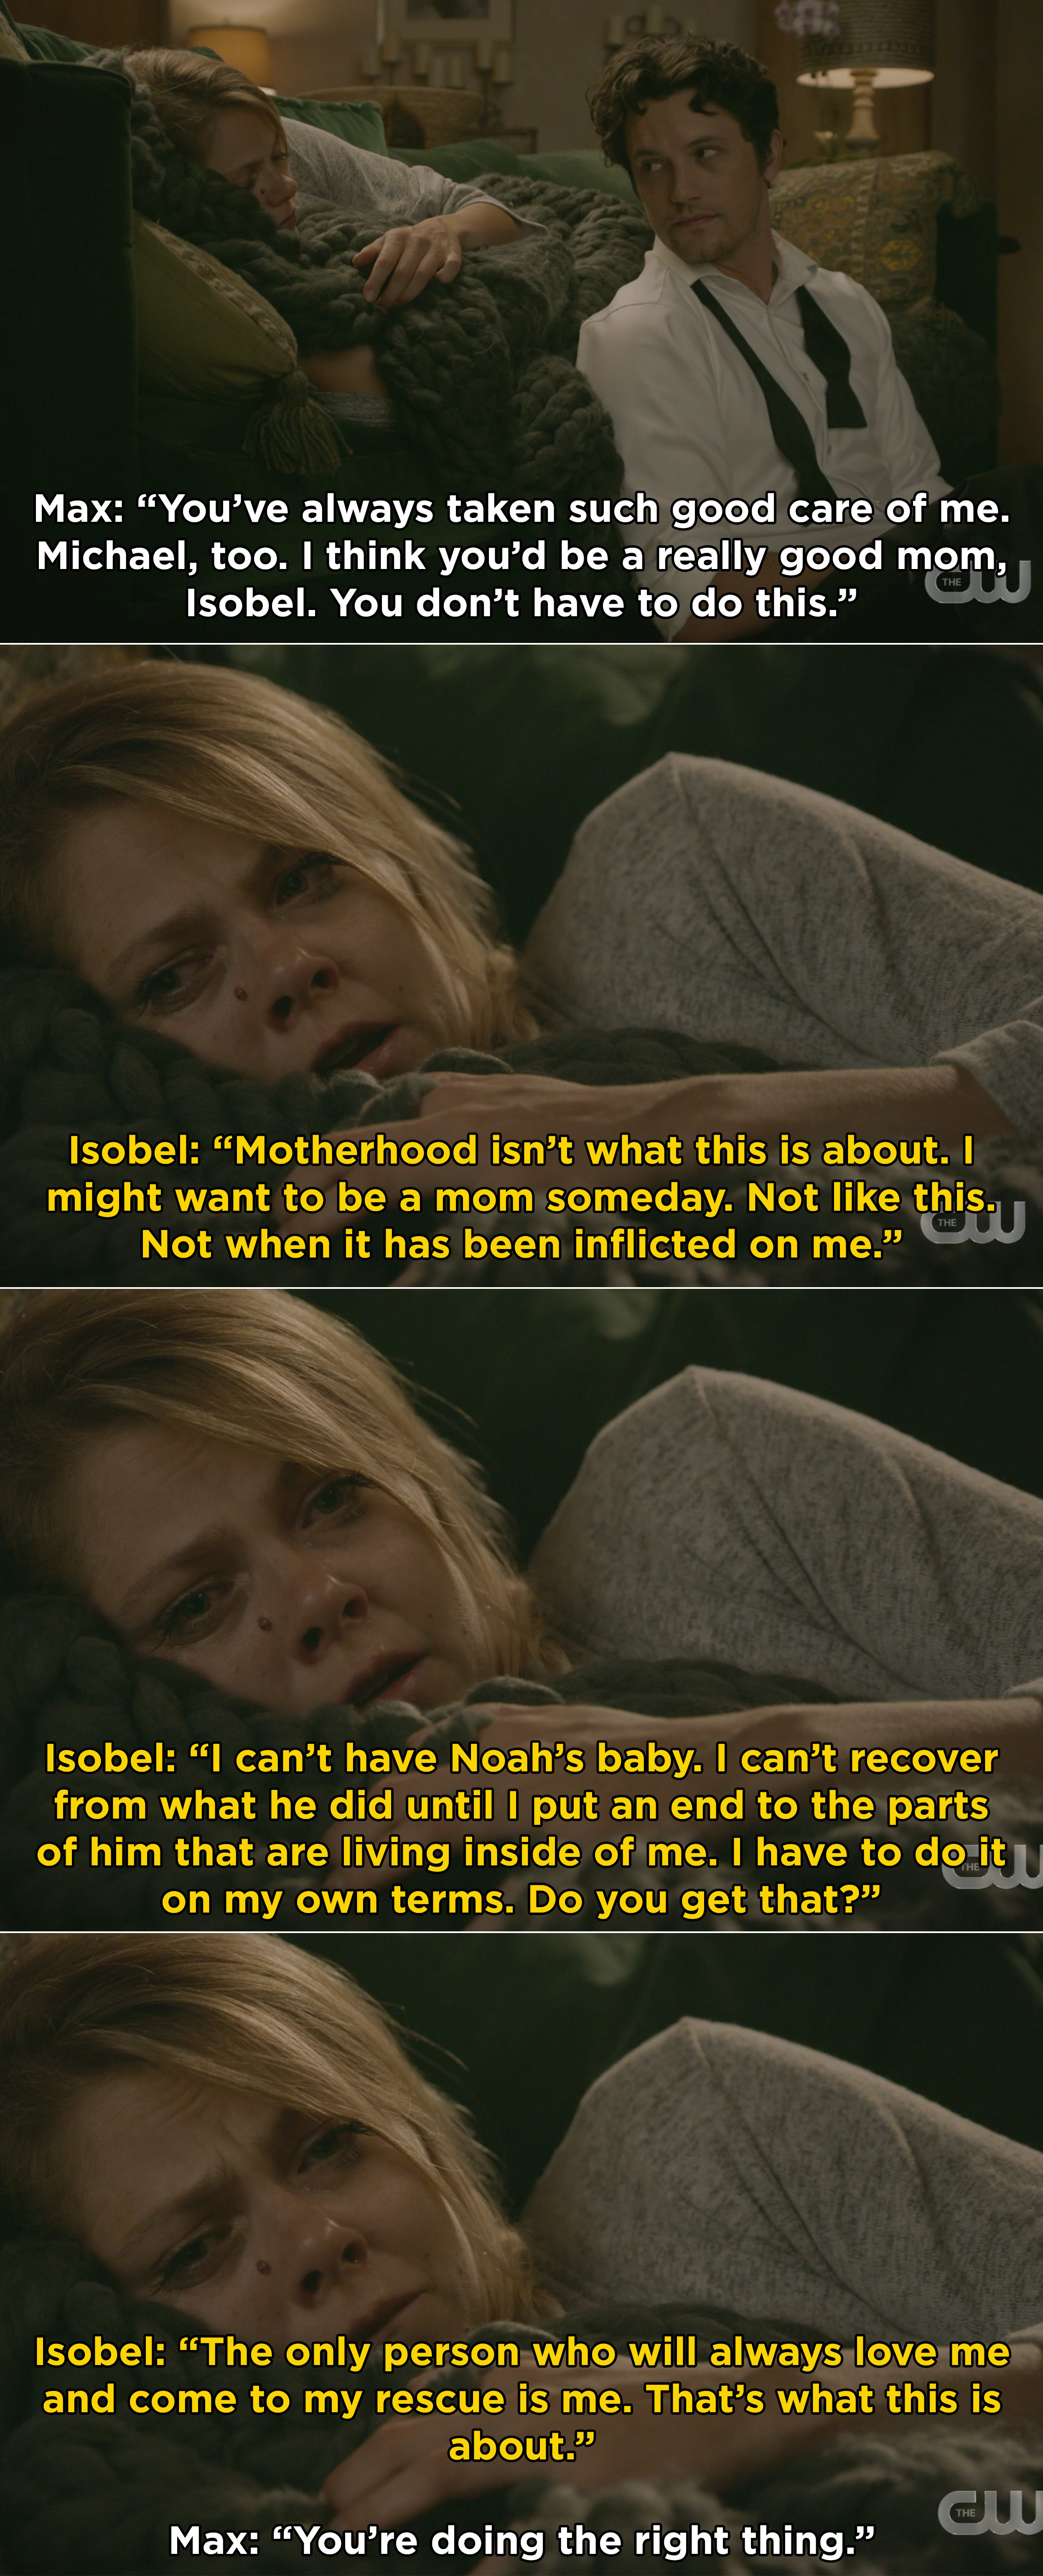 Isobel explaining to Max that she didn't want to have Noah's baby because she didn't want to owe him anything